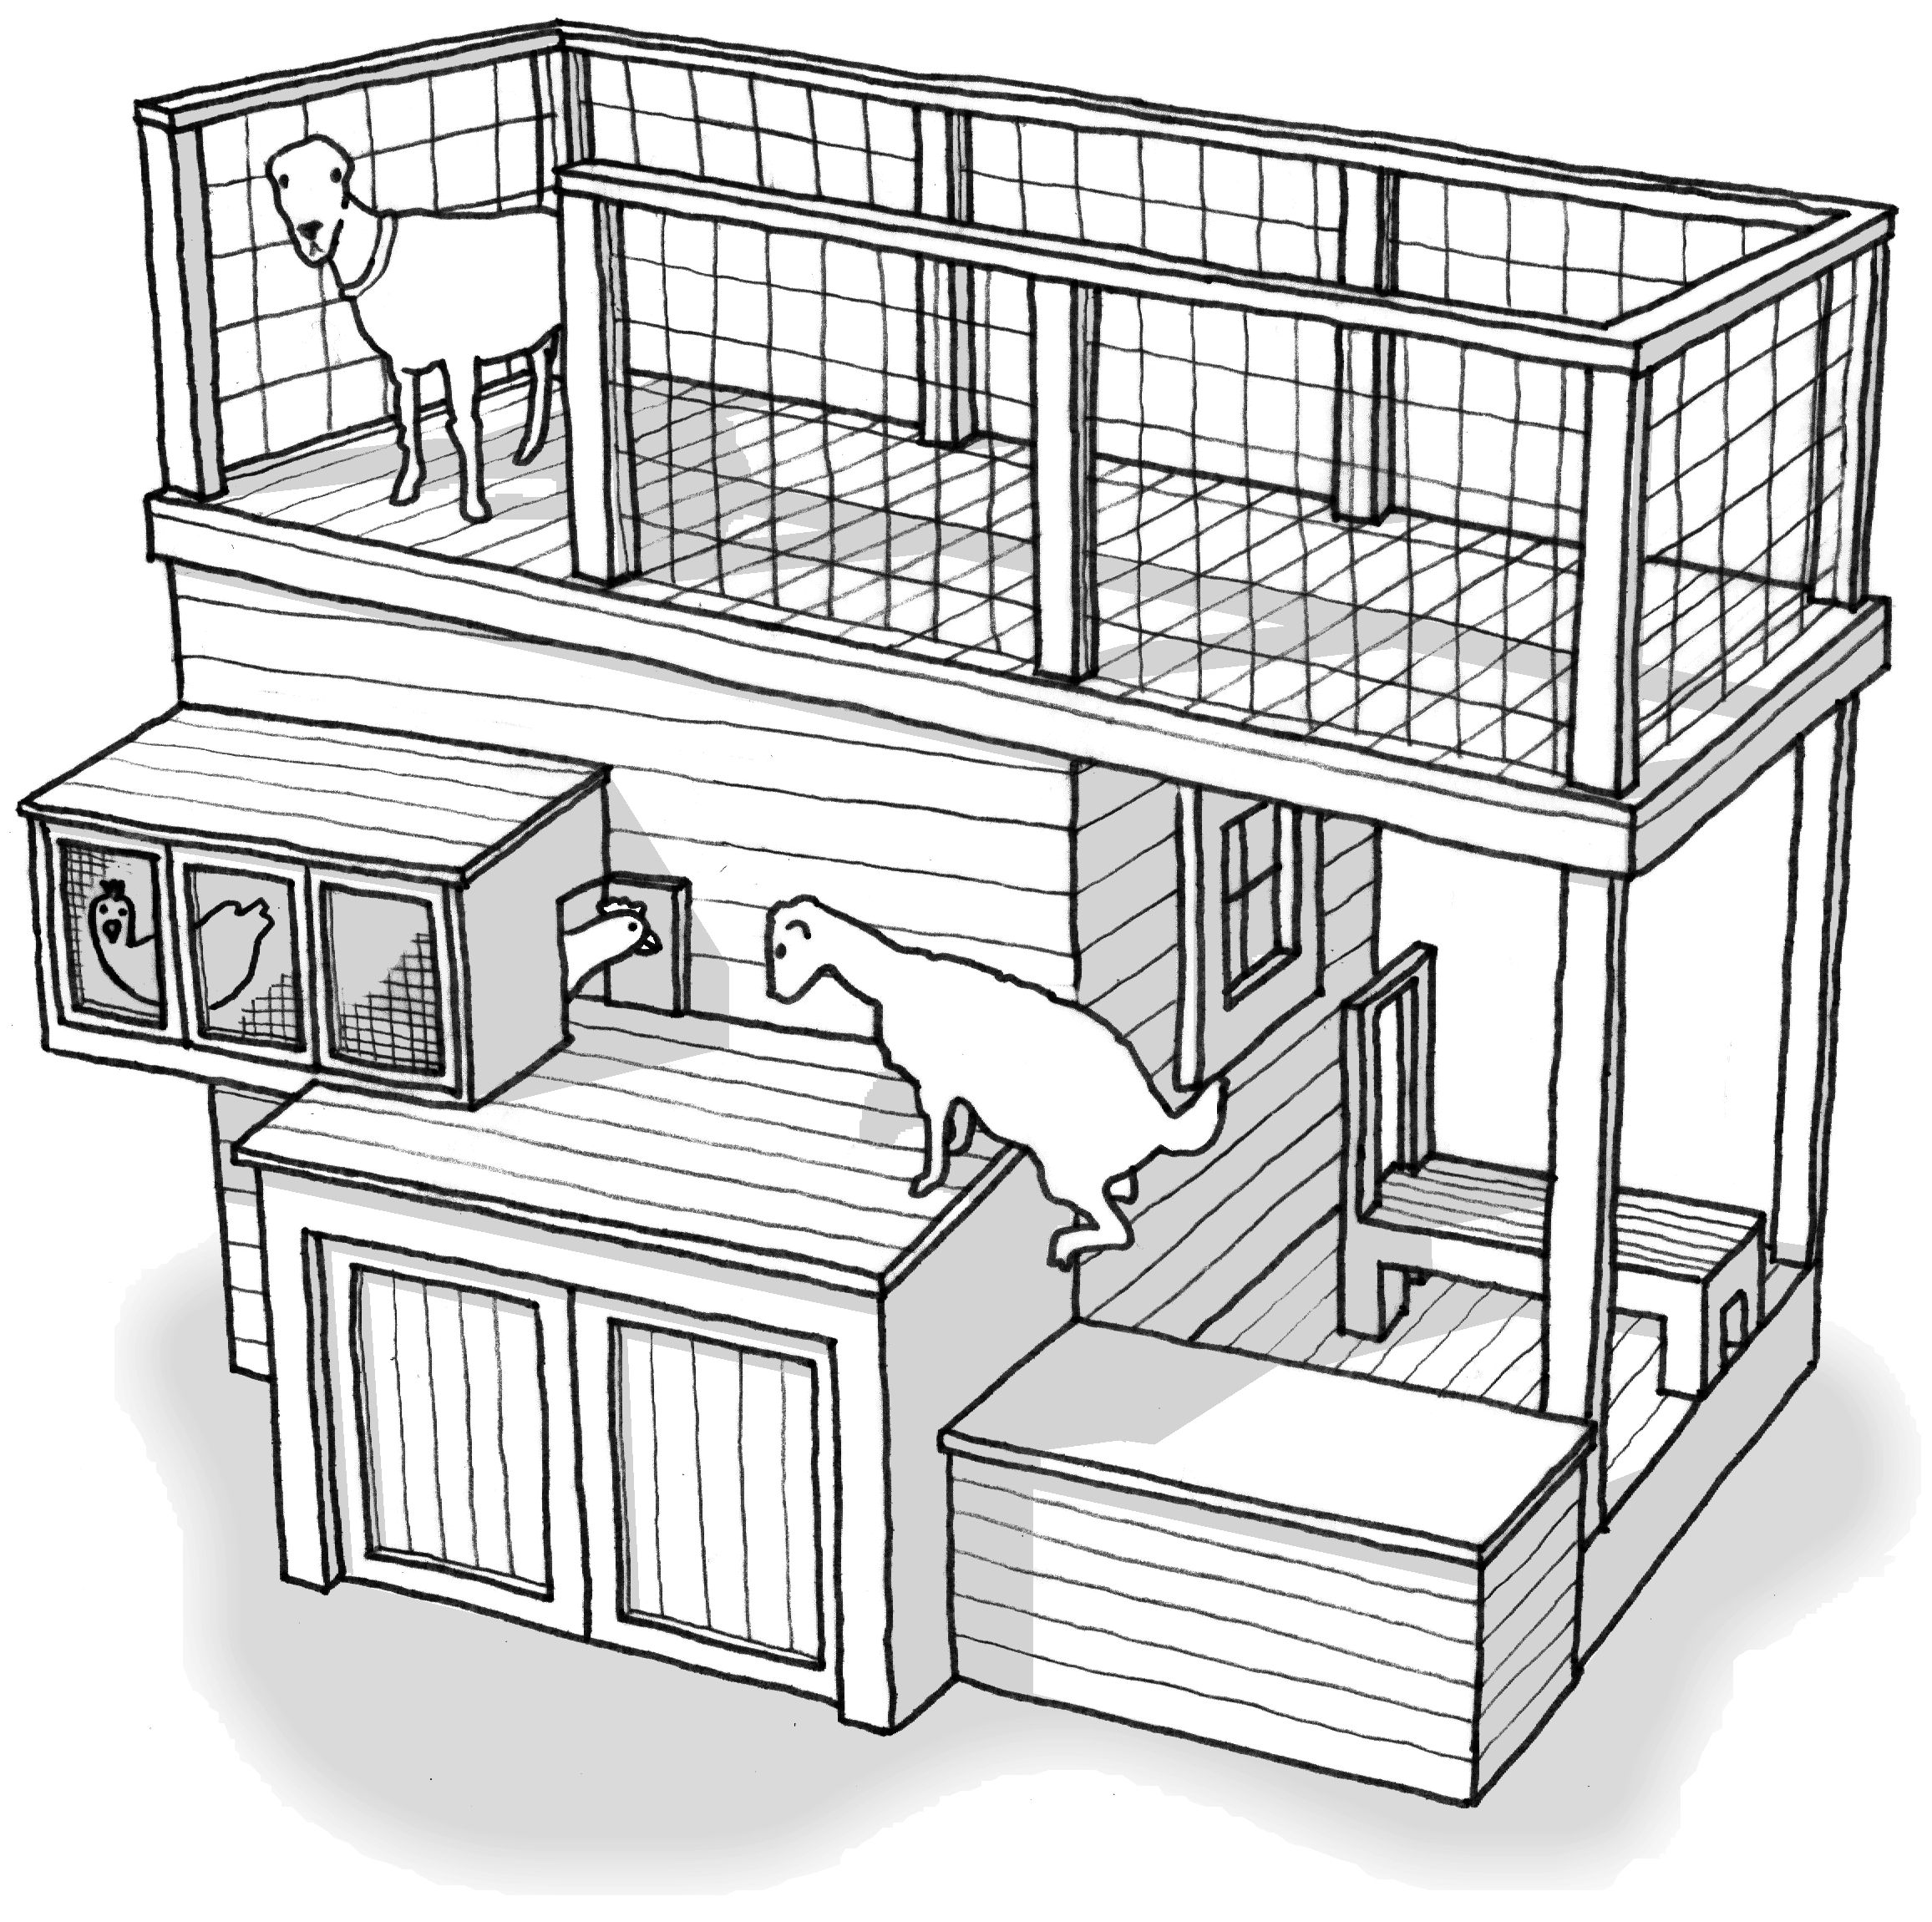 ^ 1000+ images about Goat houses & play grounds on Pinterest